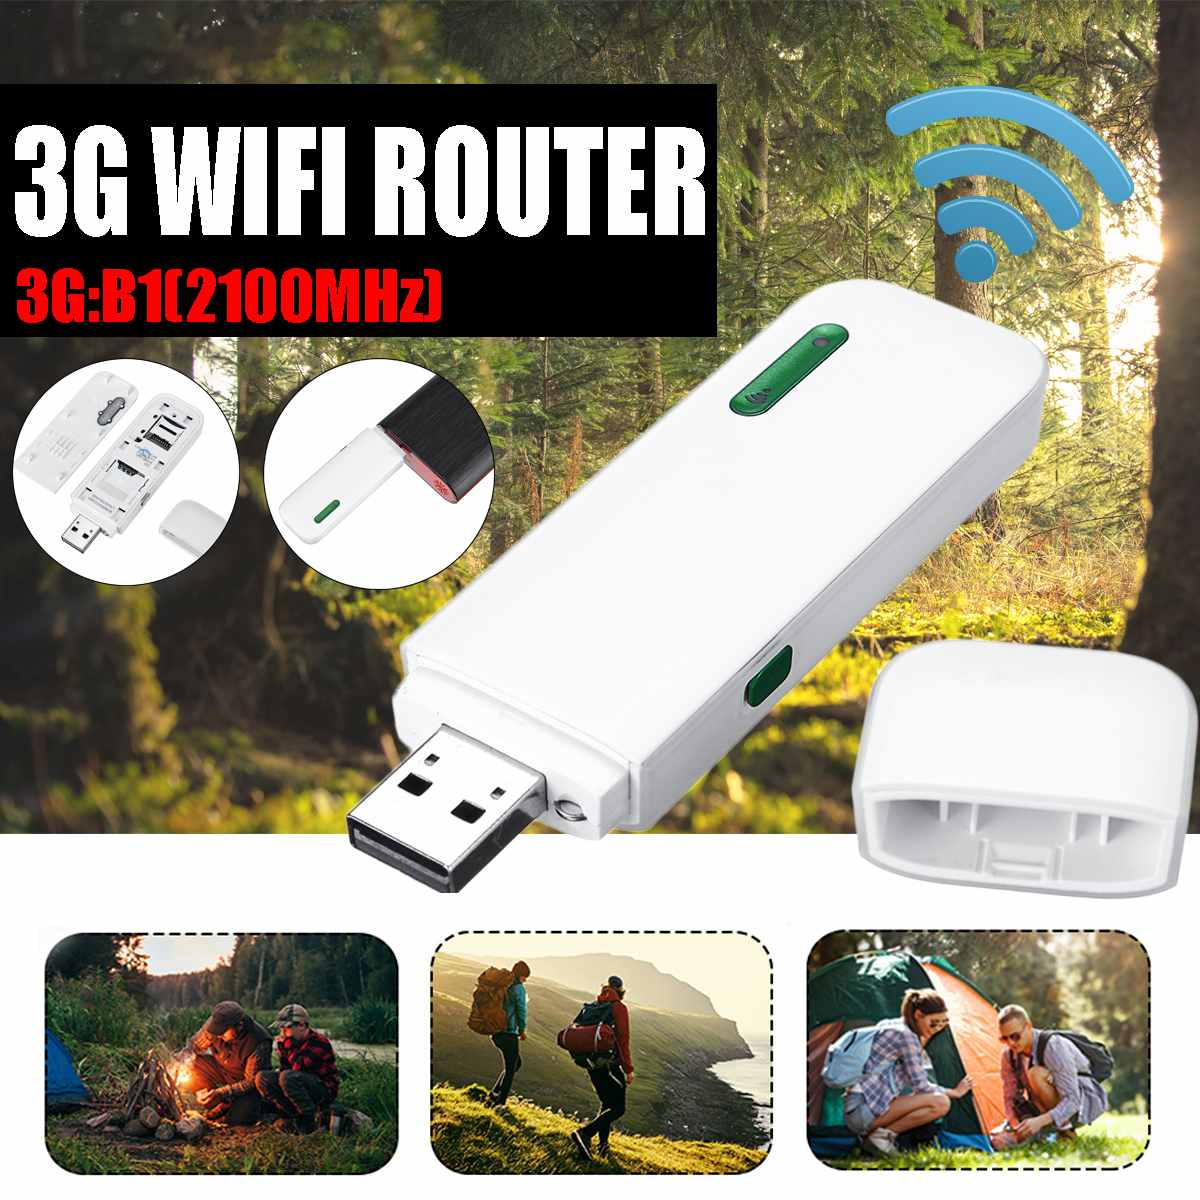 LEORY 3G LTE USB Modem Network Adapter 150Mbps With WiFi Hotspot SIM Card slot 3G Wireless Router wifi Router(China)